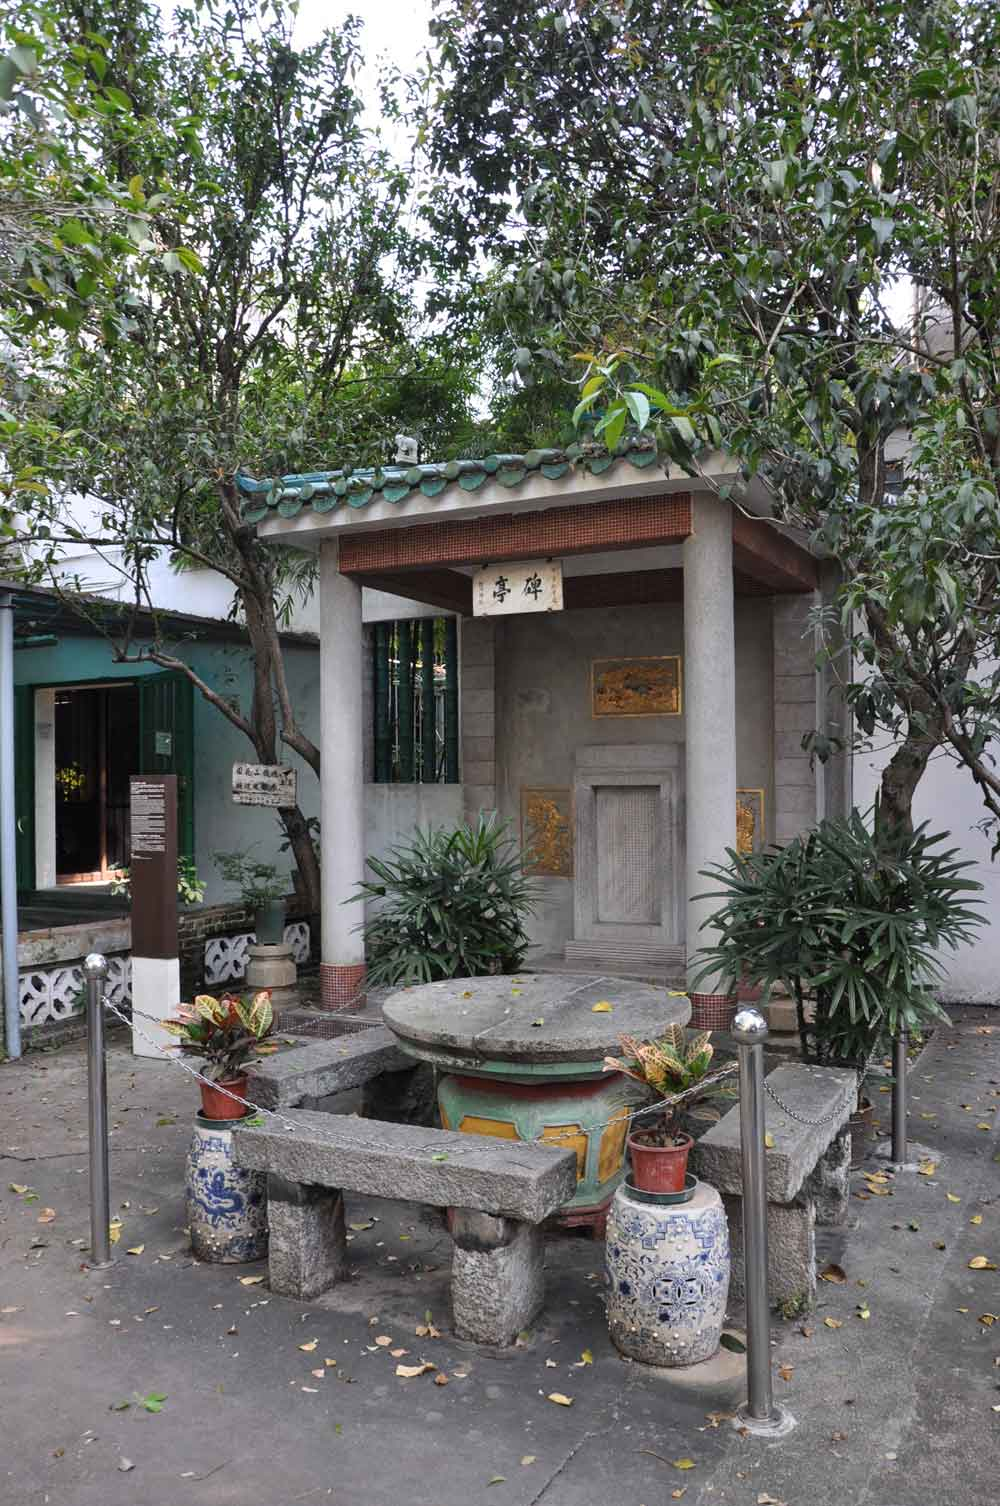 Kun Iam Temple stone table where they signed the Treaty of Mong Ha